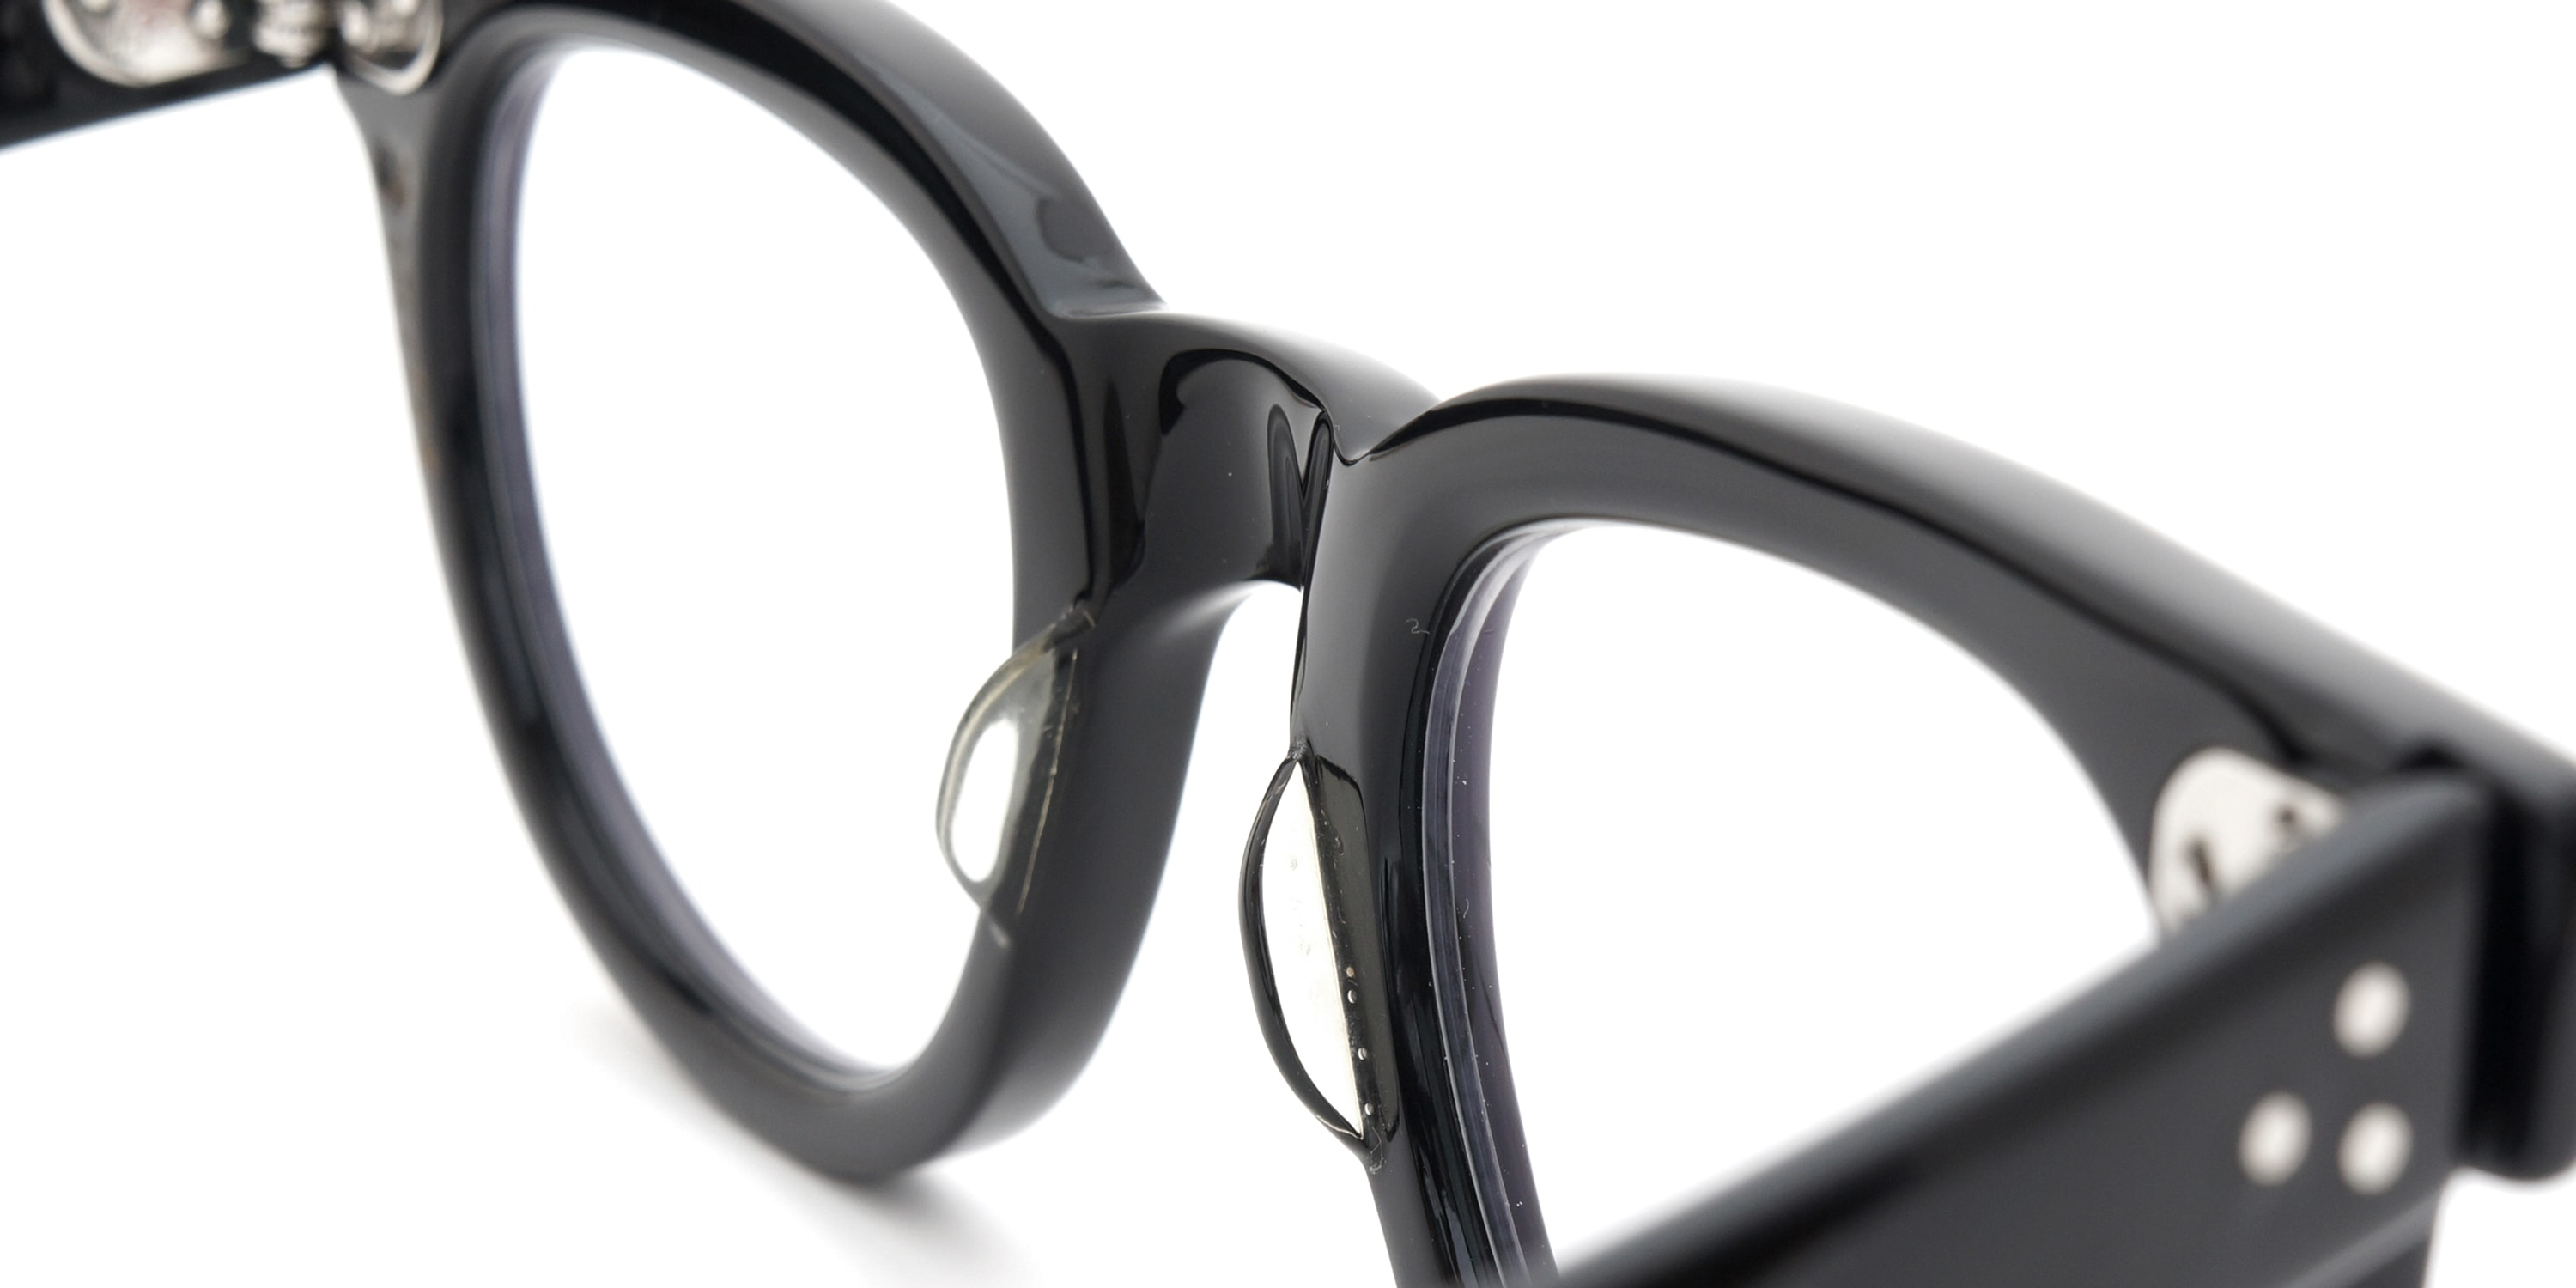 The Spectacle メガネ 1950s-70s TART OPTICAL FDR (FRAME USA) BLACK 44-24 イメージ10